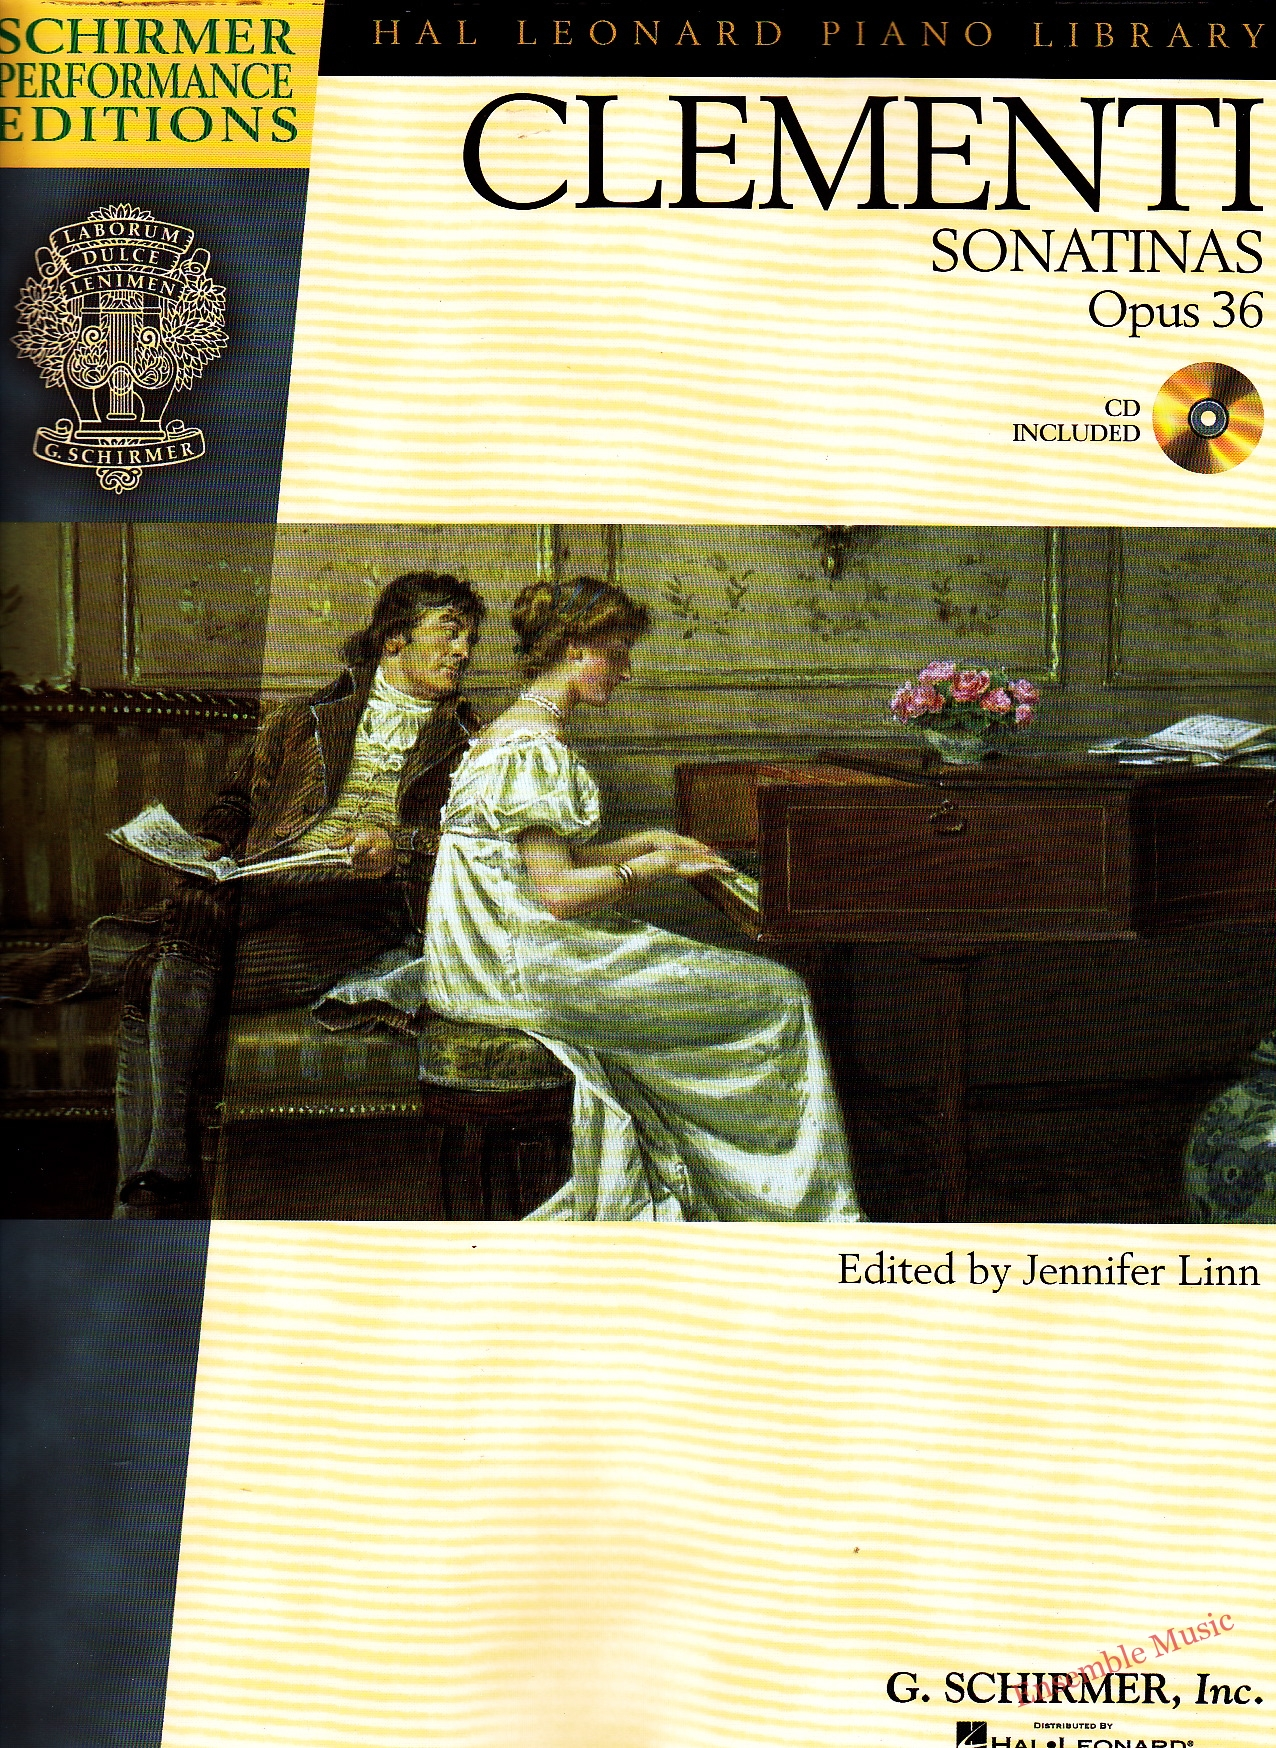 Clementi Sonatinas Opus 36 CD Included